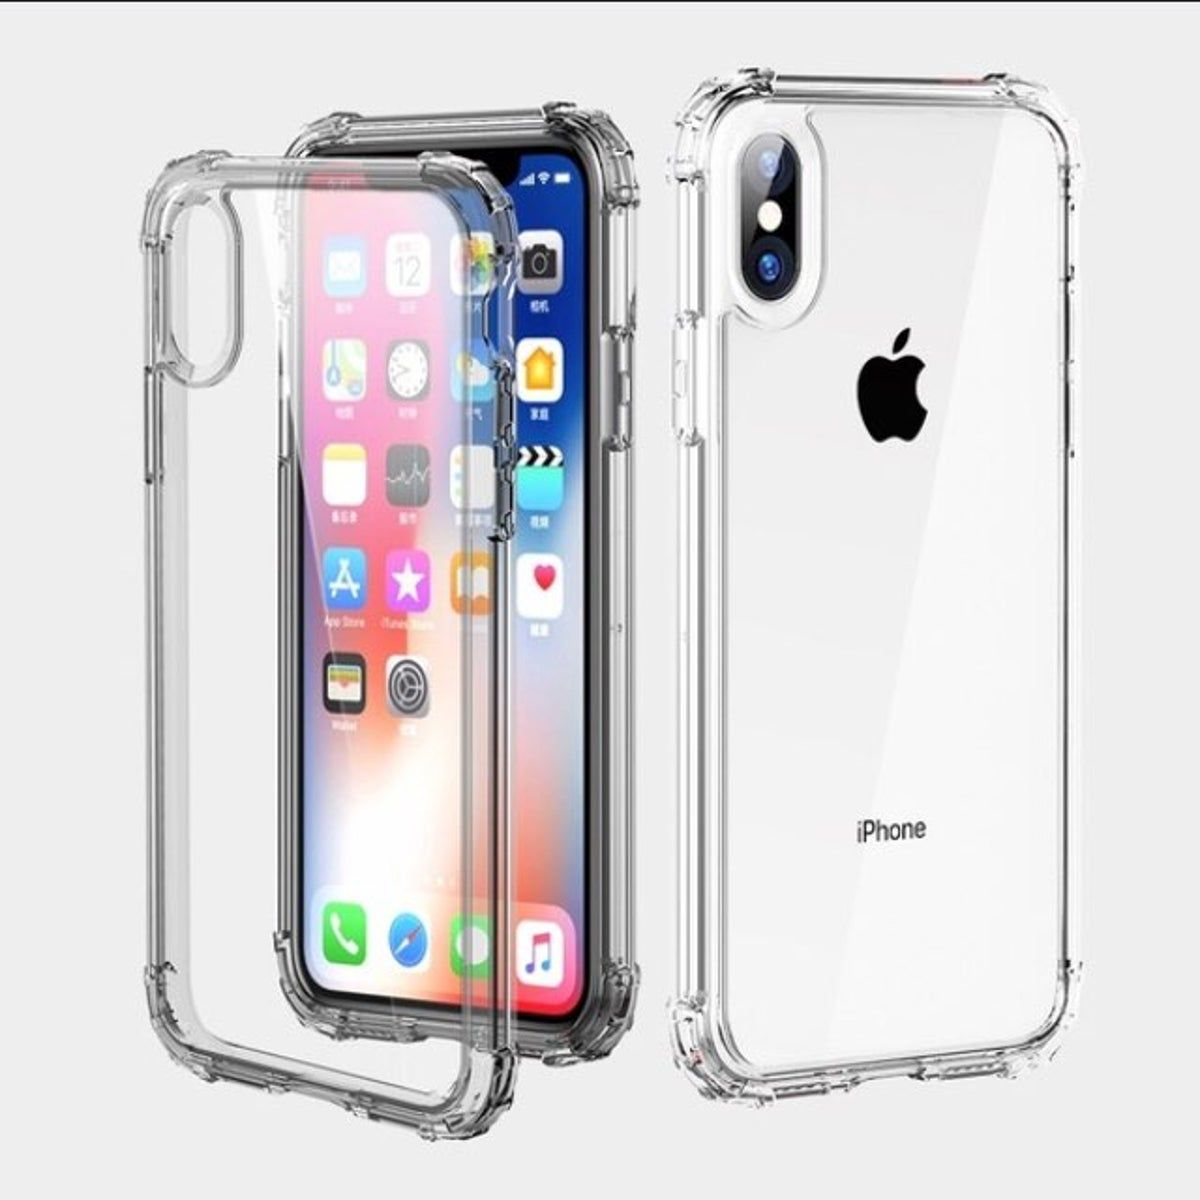 Iphone X Clear Case Clear Iphone Covers Silicone Iphone Cases Iphone Transparent Case